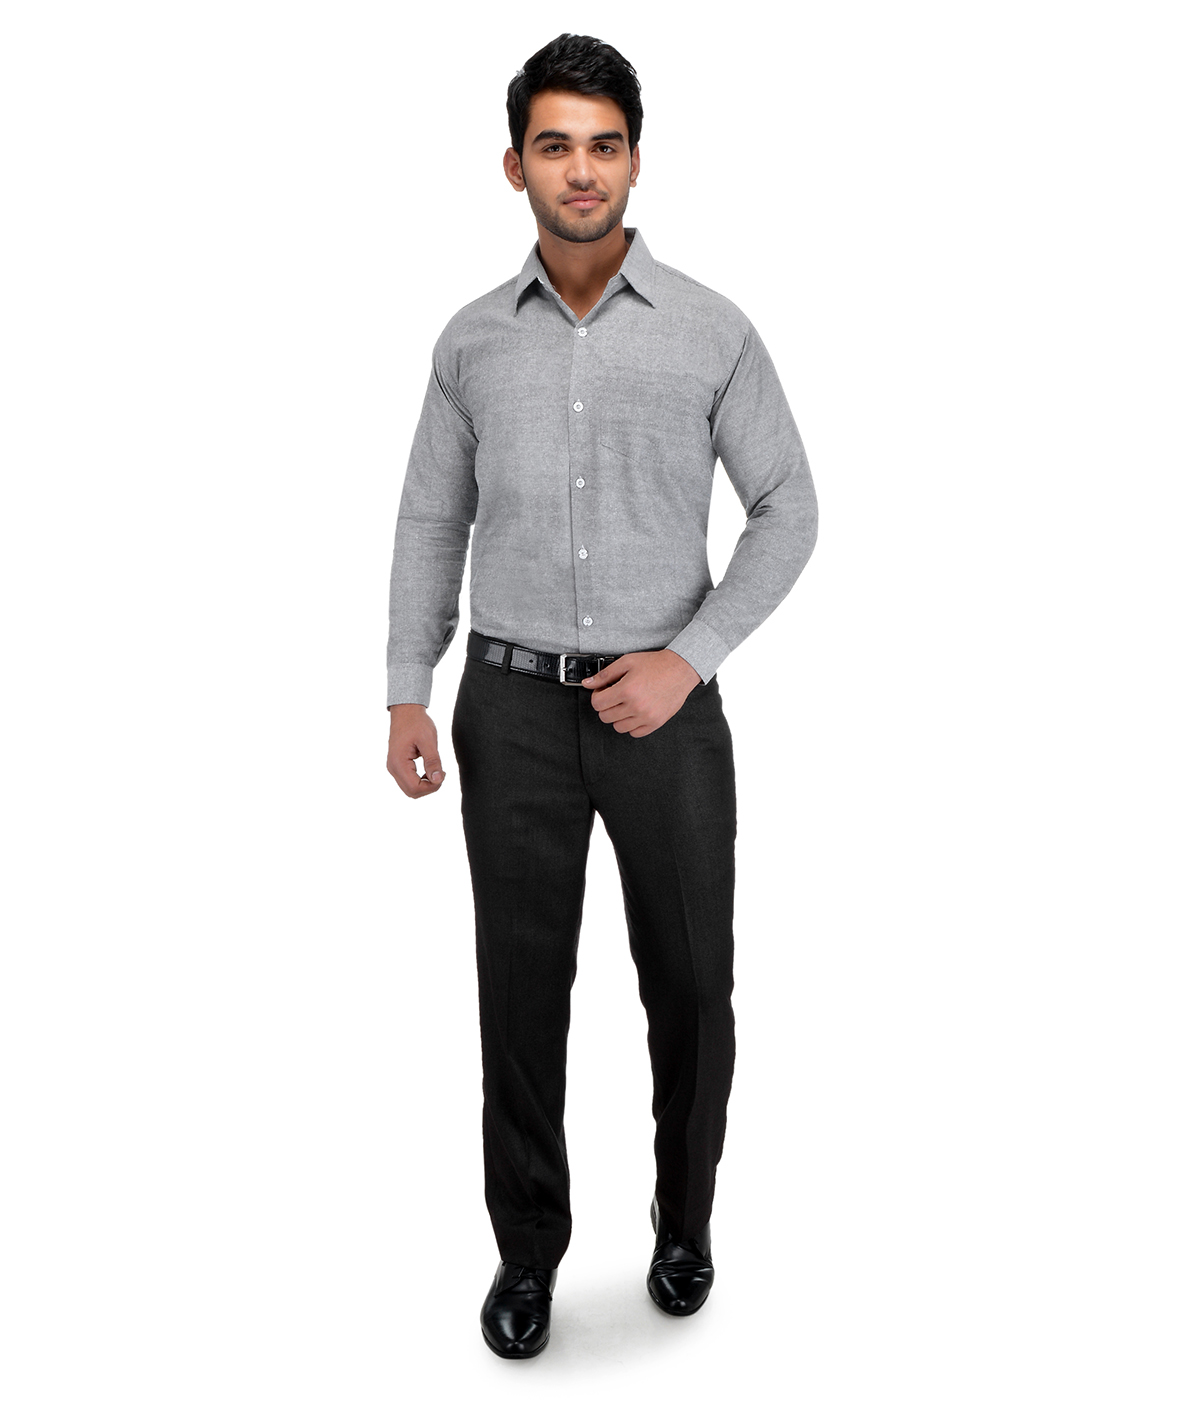 KHADIO Grey Full Sleeves Cotton Regular Fit Shirt